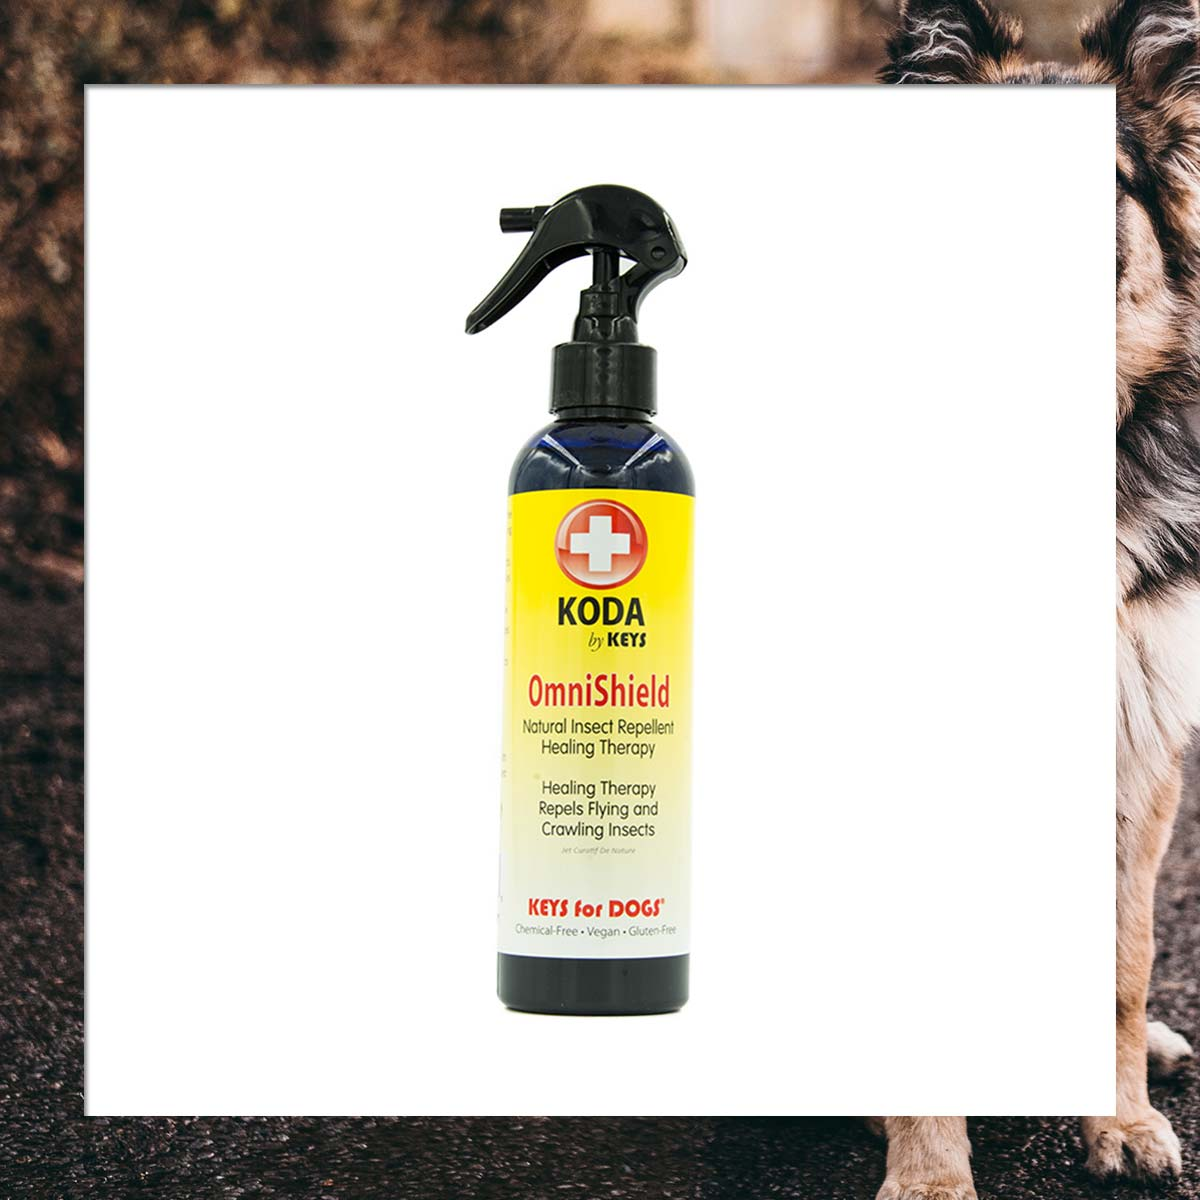 A spray bottle of Keys Koda OmniShield Insect Repellent for Dogs